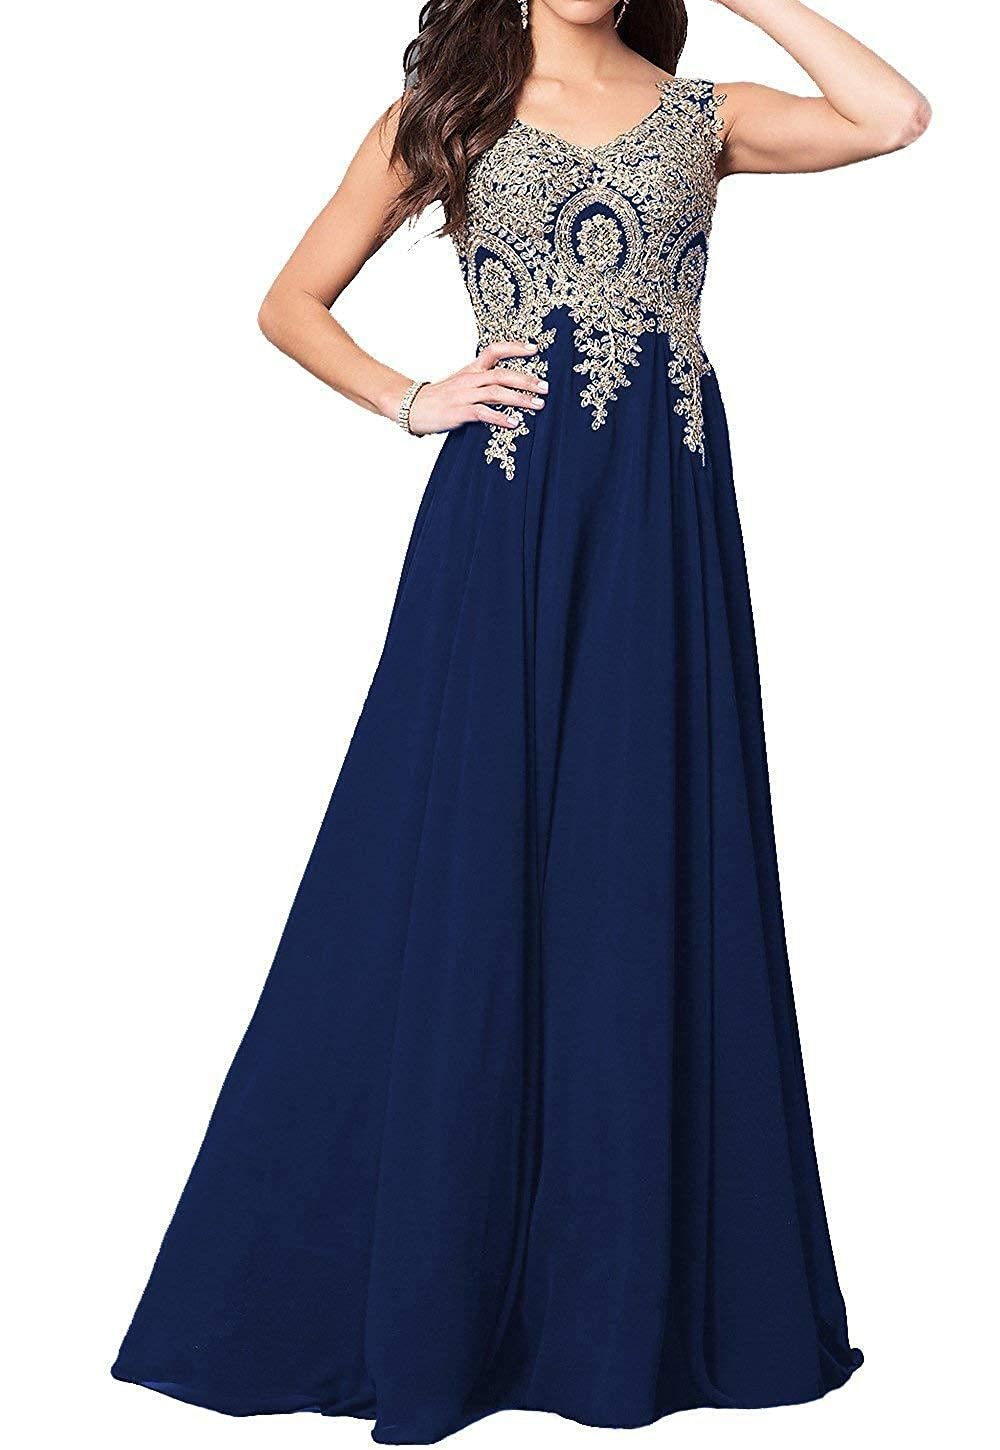 Navy bluee GMAR Beaded Appliques Prom Dresses A Line V Neck Open Back Long Formal Gowns